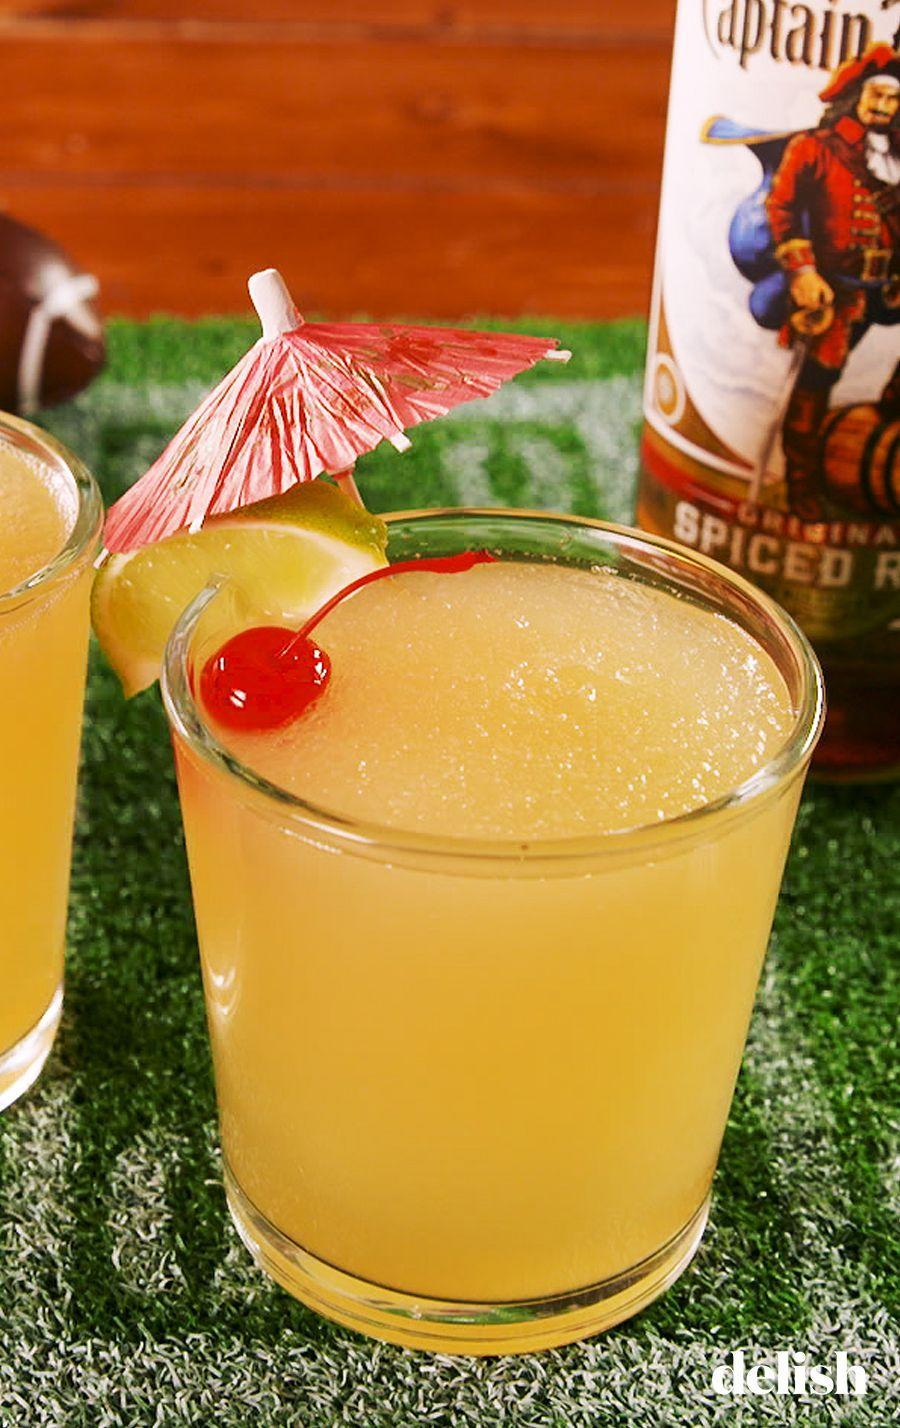 """<p>Margaritas made with rum is the absolute best thing to happen to margaritas.</p><p>Get the recipe from <a href=""""https://www.delish.com/cooking/recipe-ideas/a26001310/touchdown-tikiritas-recipe/"""" rel=""""nofollow noopener"""" target=""""_blank"""" data-ylk=""""slk:Delish"""" class=""""link rapid-noclick-resp"""">Delish</a>.</p>"""